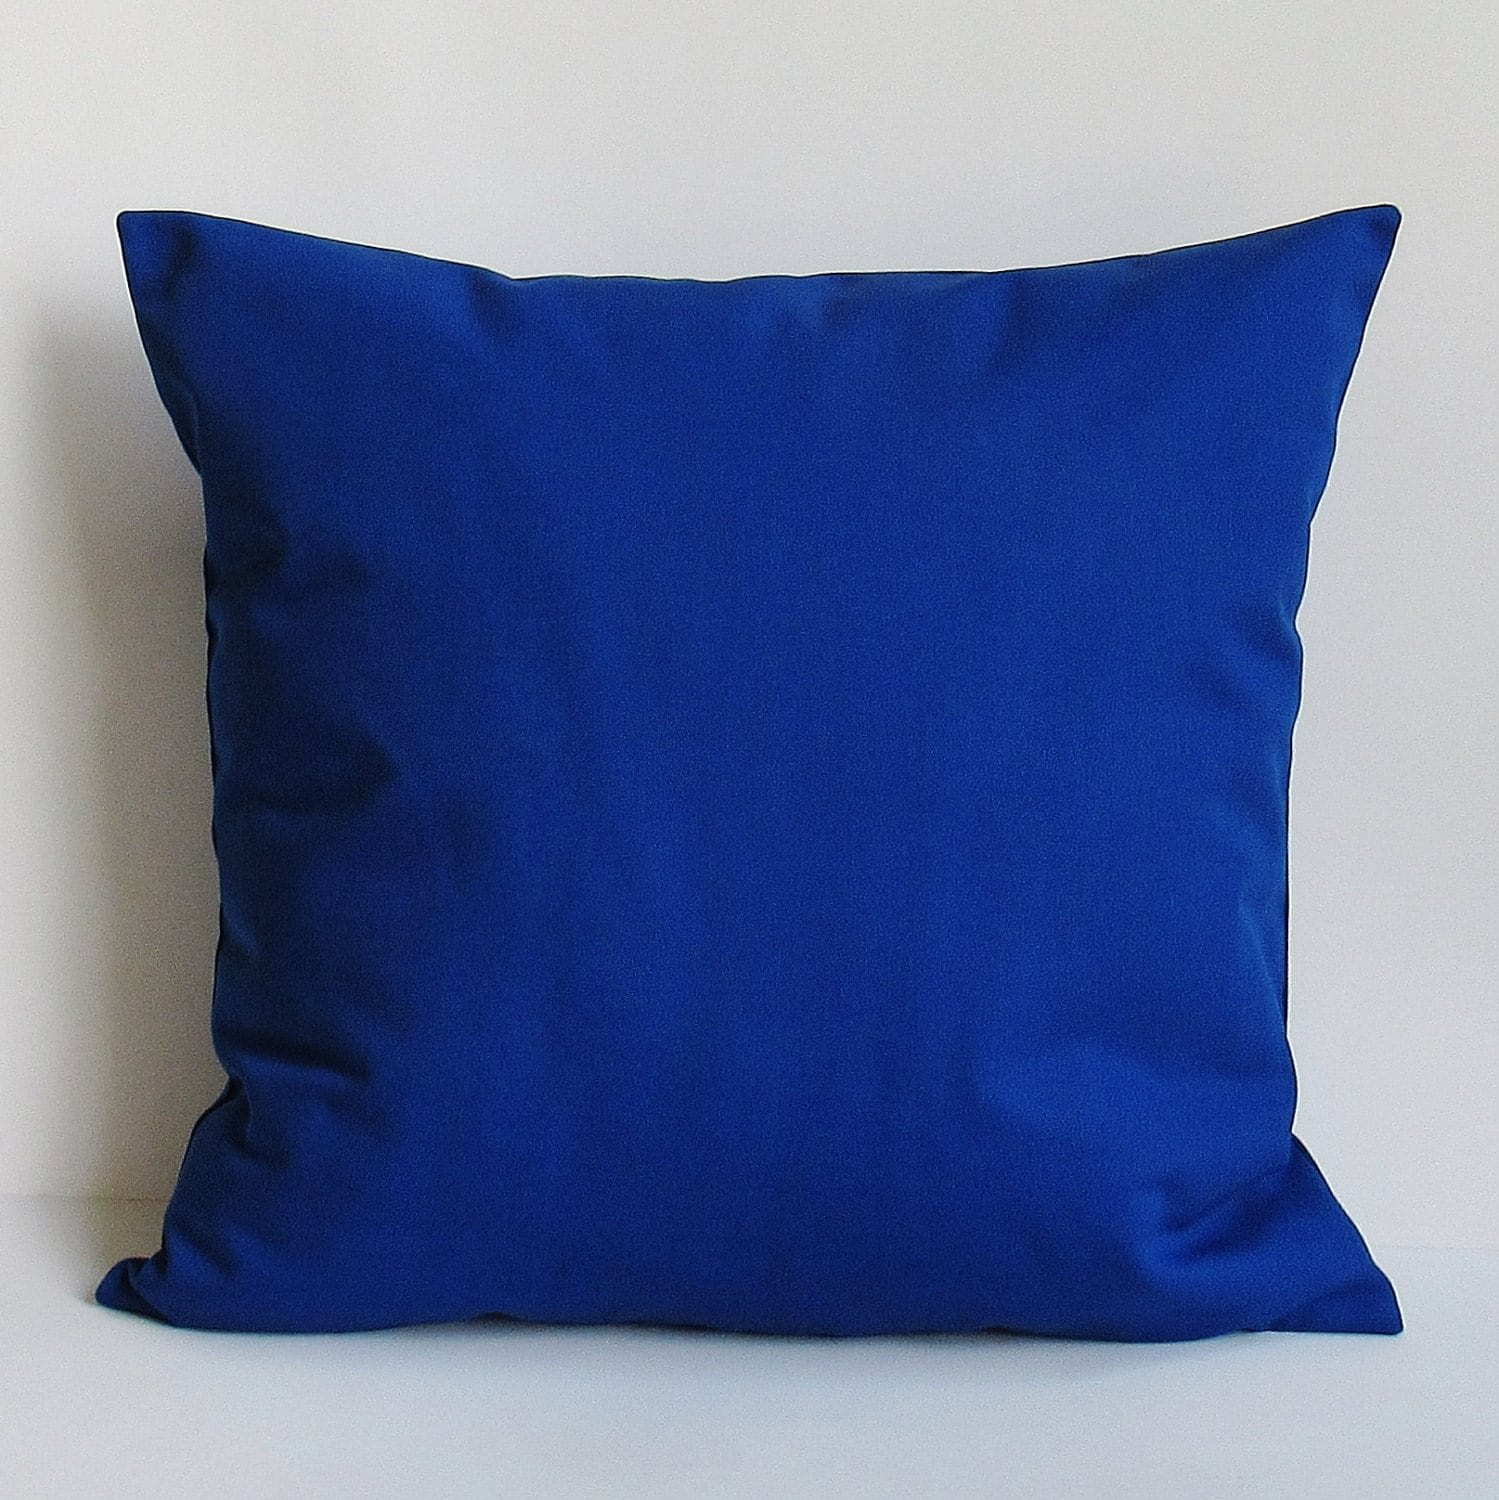 Throw Pillows Royal Blue : Cobalt Royal Blue Pillow Cover Decorative Throw Accent Sofa